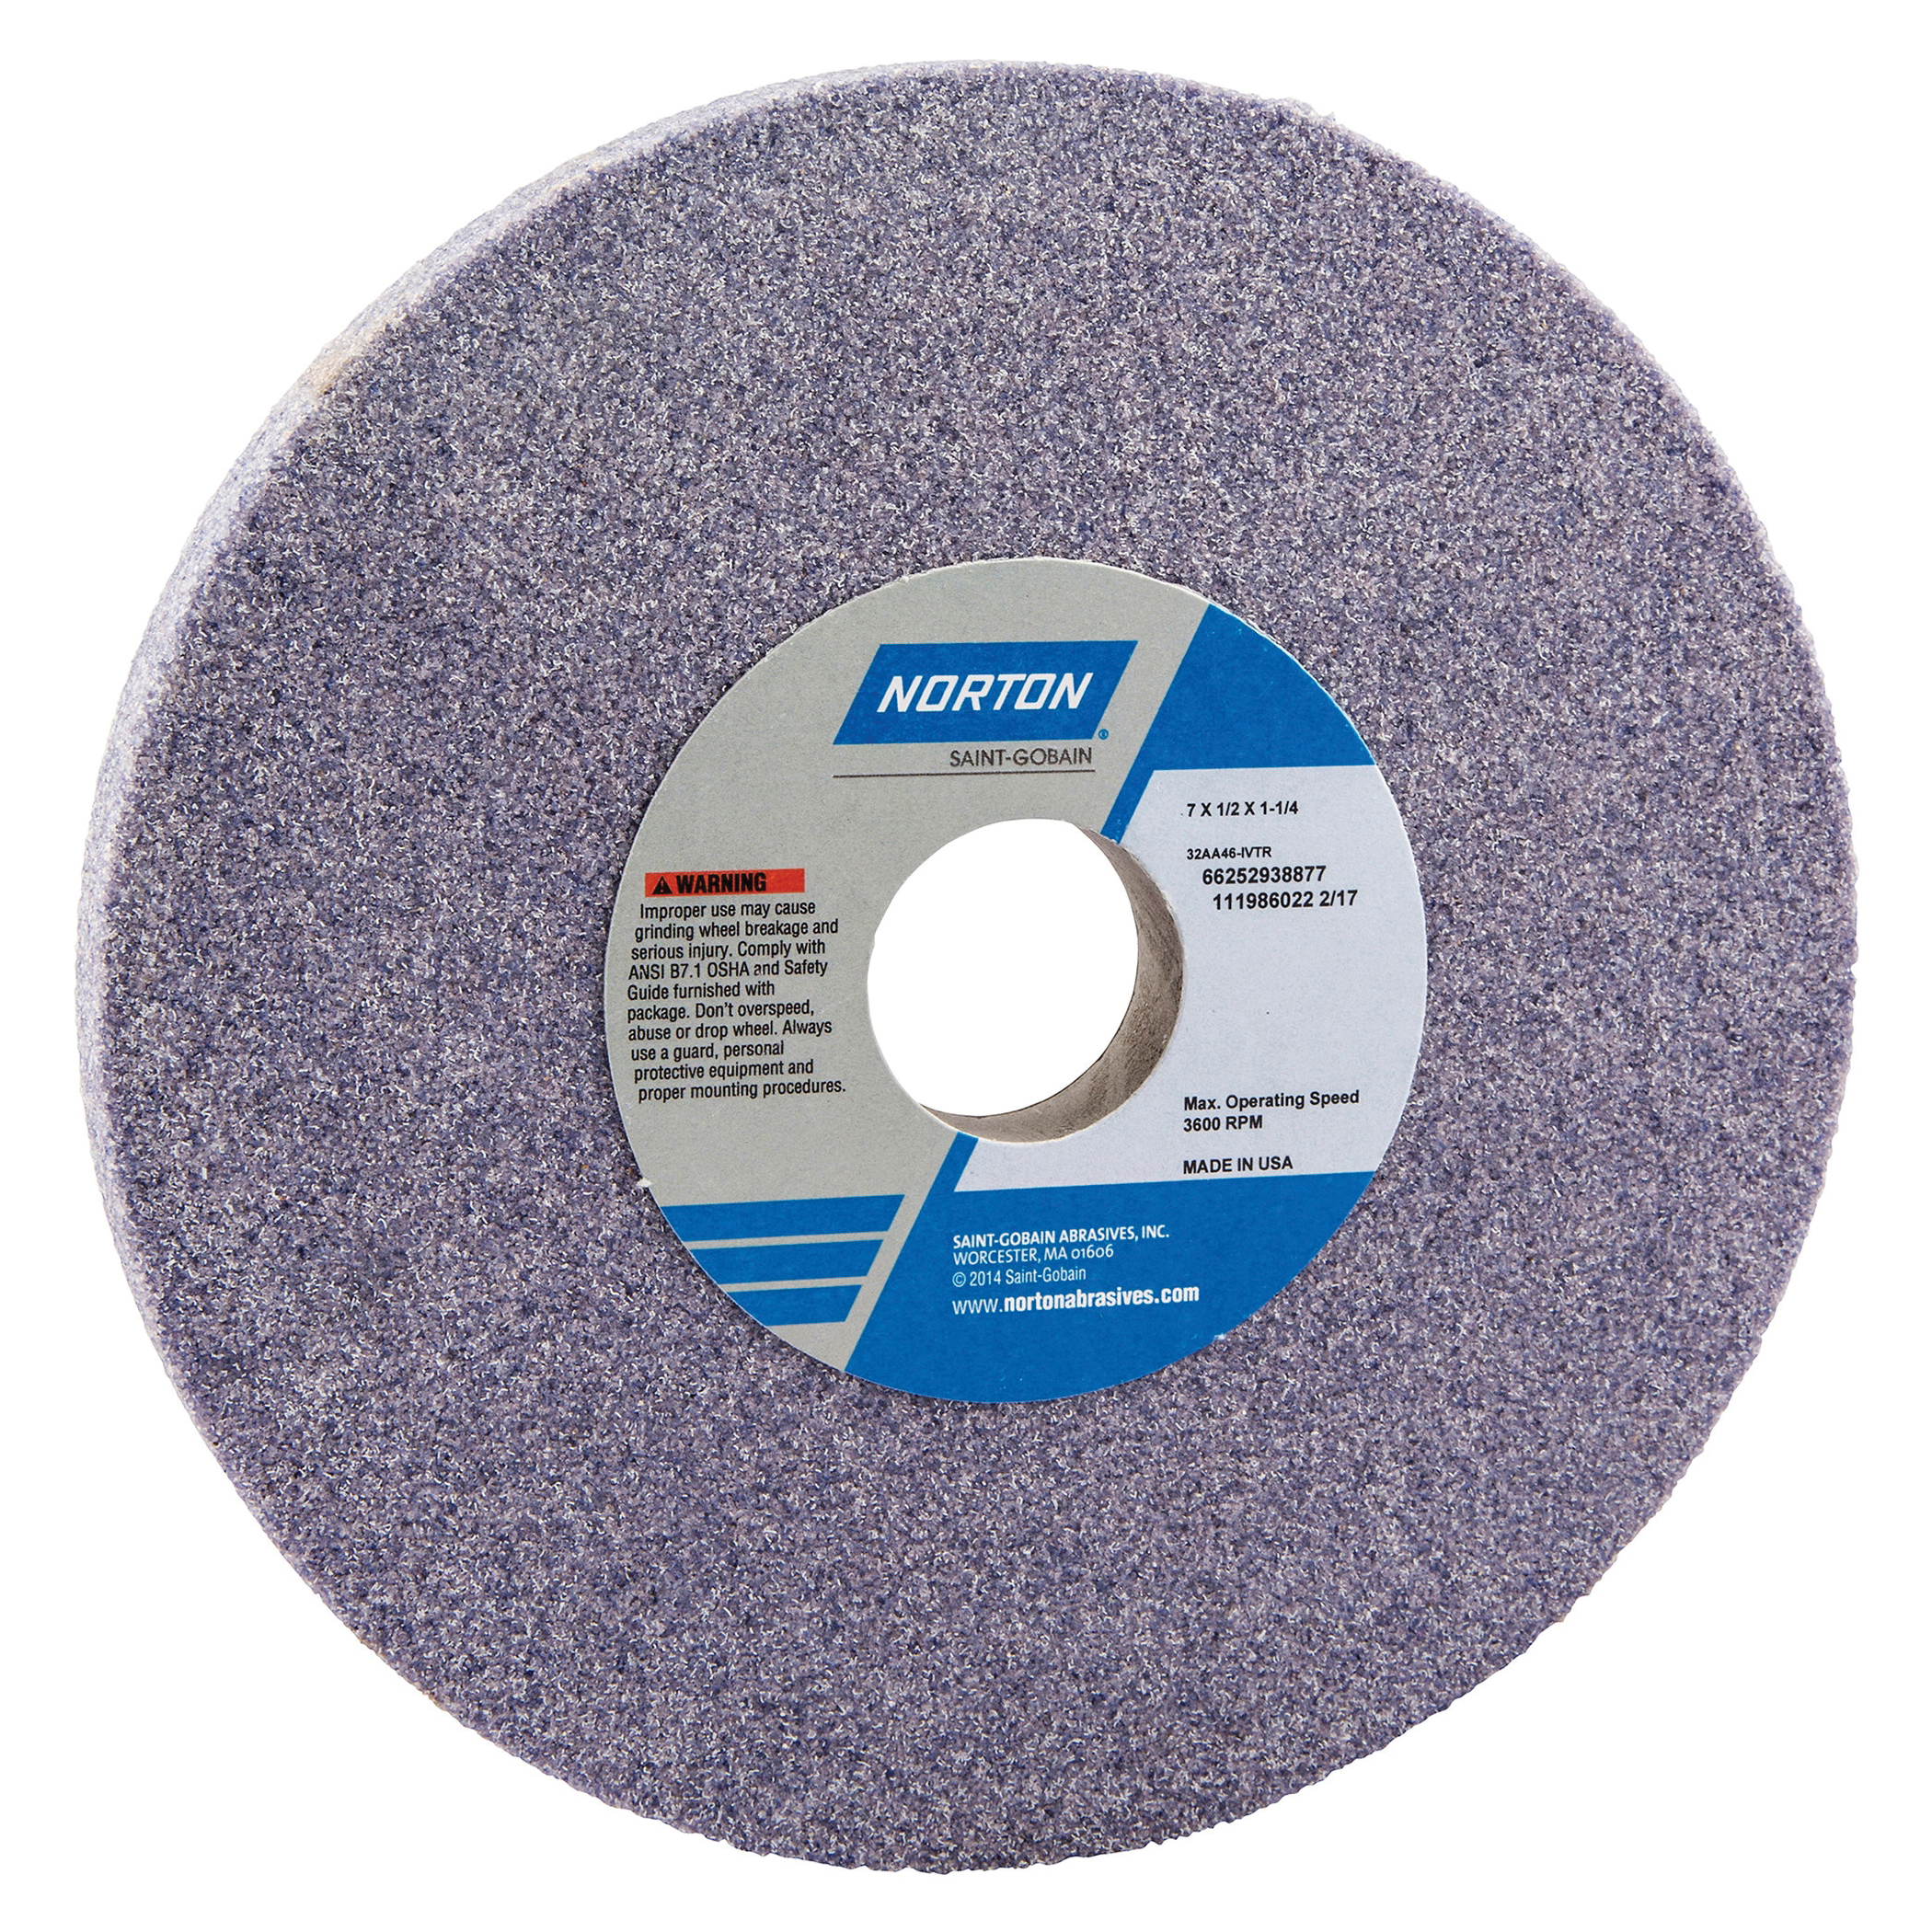 Norton® 66252938877 32AA Straight Toolroom Wheel, 7 in Dia x 1/2 in THK, 1-1/4 in Center Hole, 46 Grit, Aluminum Oxide Abrasive